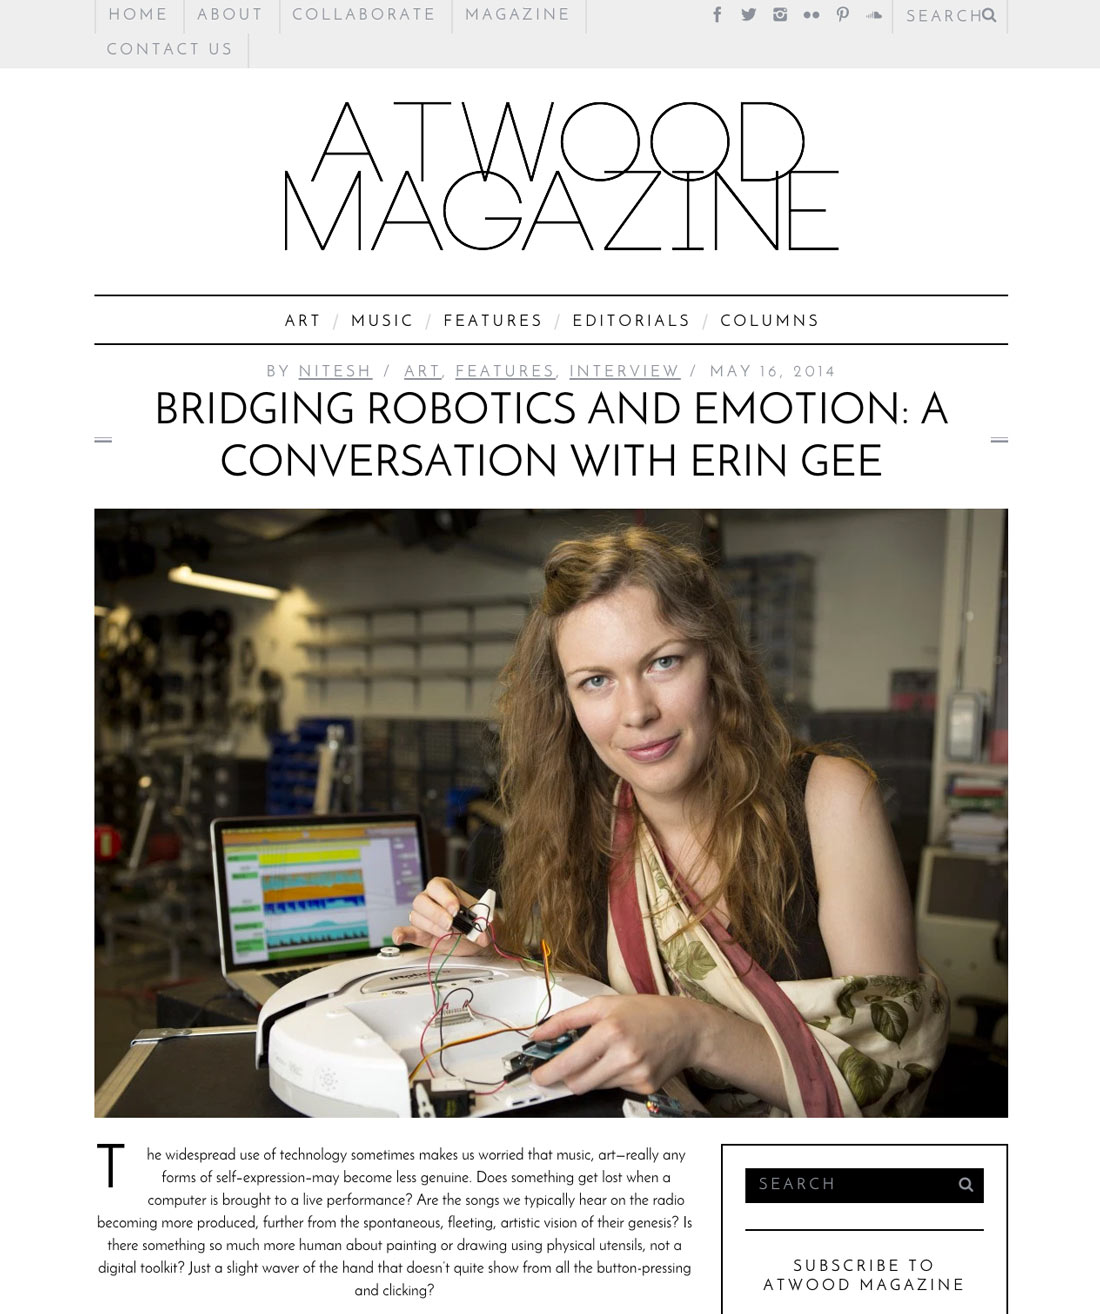 Erin Gee - Atwood Magazine Article